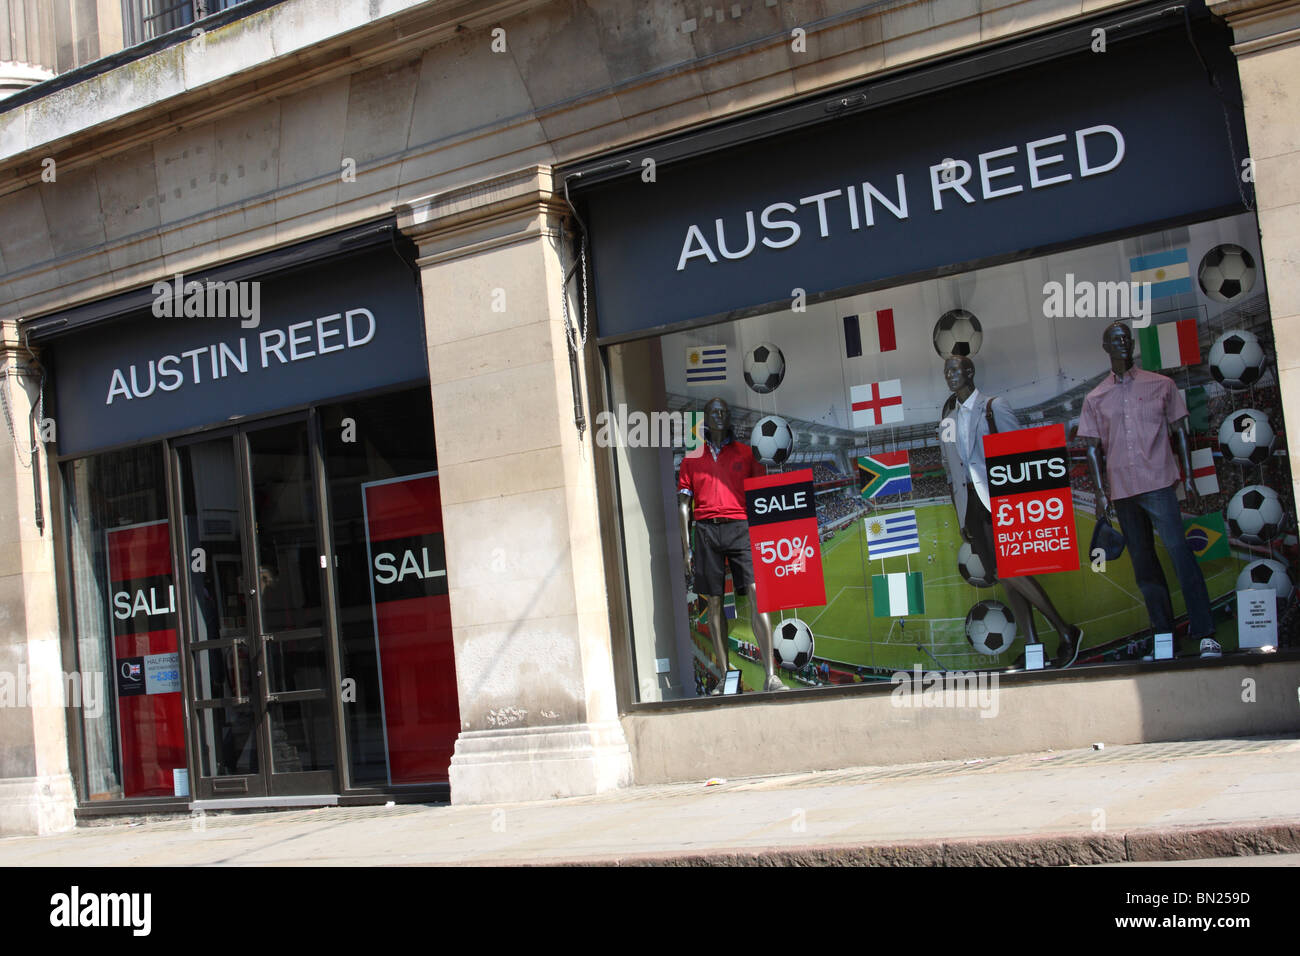 An Austin Reed Store In A U K City Stock Photo Alamy